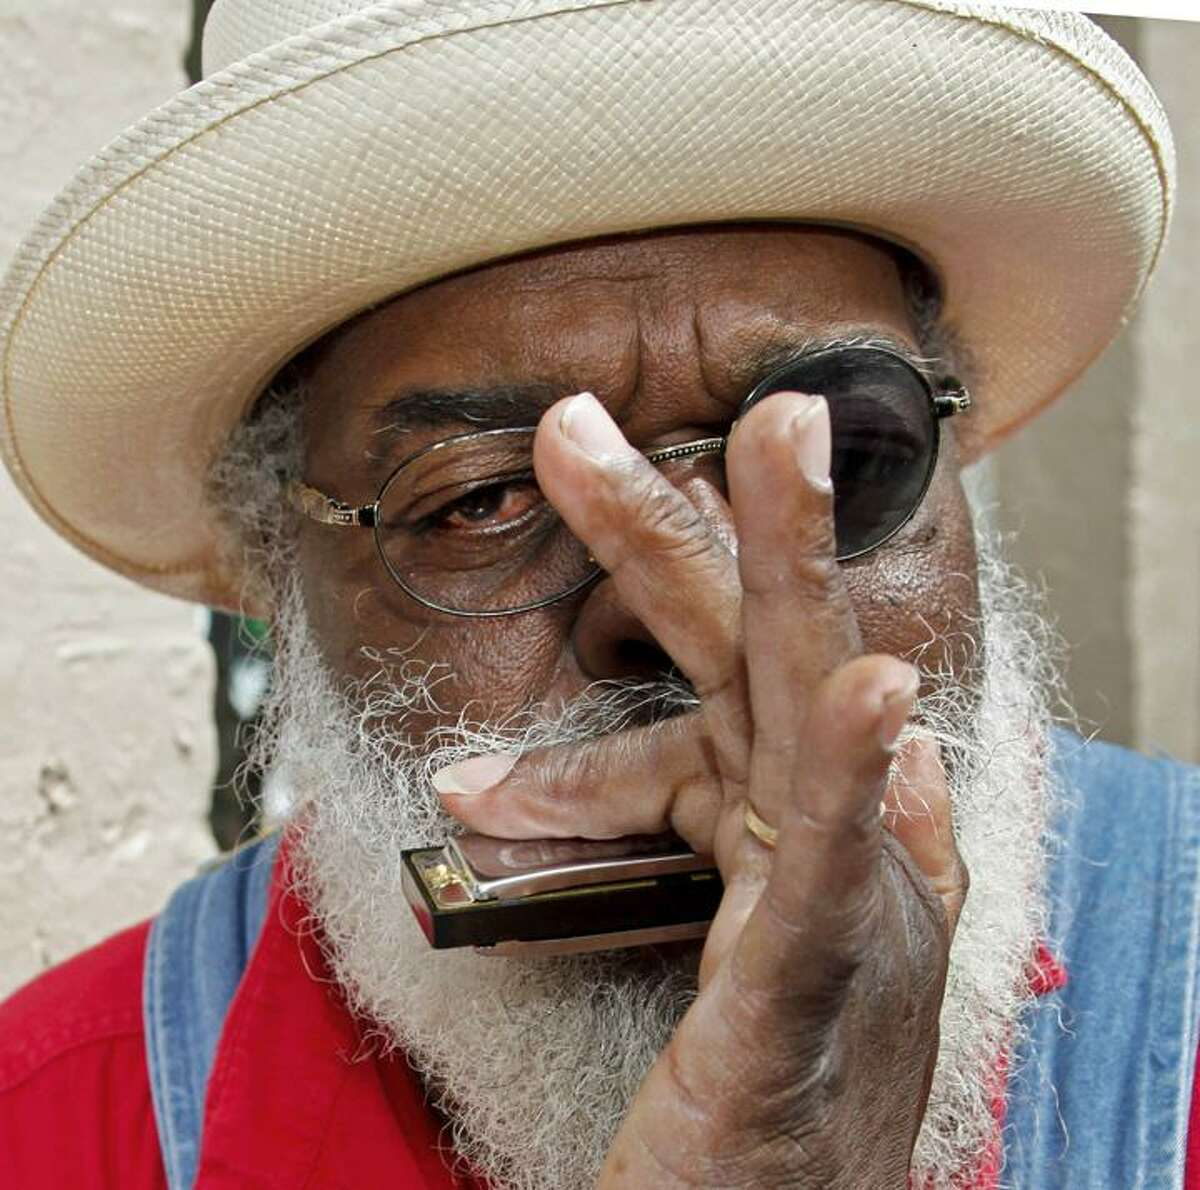 """In a Friday, April 2 photo, New Orleans street musician Elliott Small, aka """"Grandpa Elliott,"""" plays harmonica and sings in the French Quarter of New Orleans during an interview with an Associated Press reporter. Grandpa Elliott's popularity went global after the Playing for Change hit viral video """"Stand By Me"""" received millions of viewers. He will be a featured singer at the New Orleans Jazz and Heritage Festival that kicks off Friday. (AP)"""